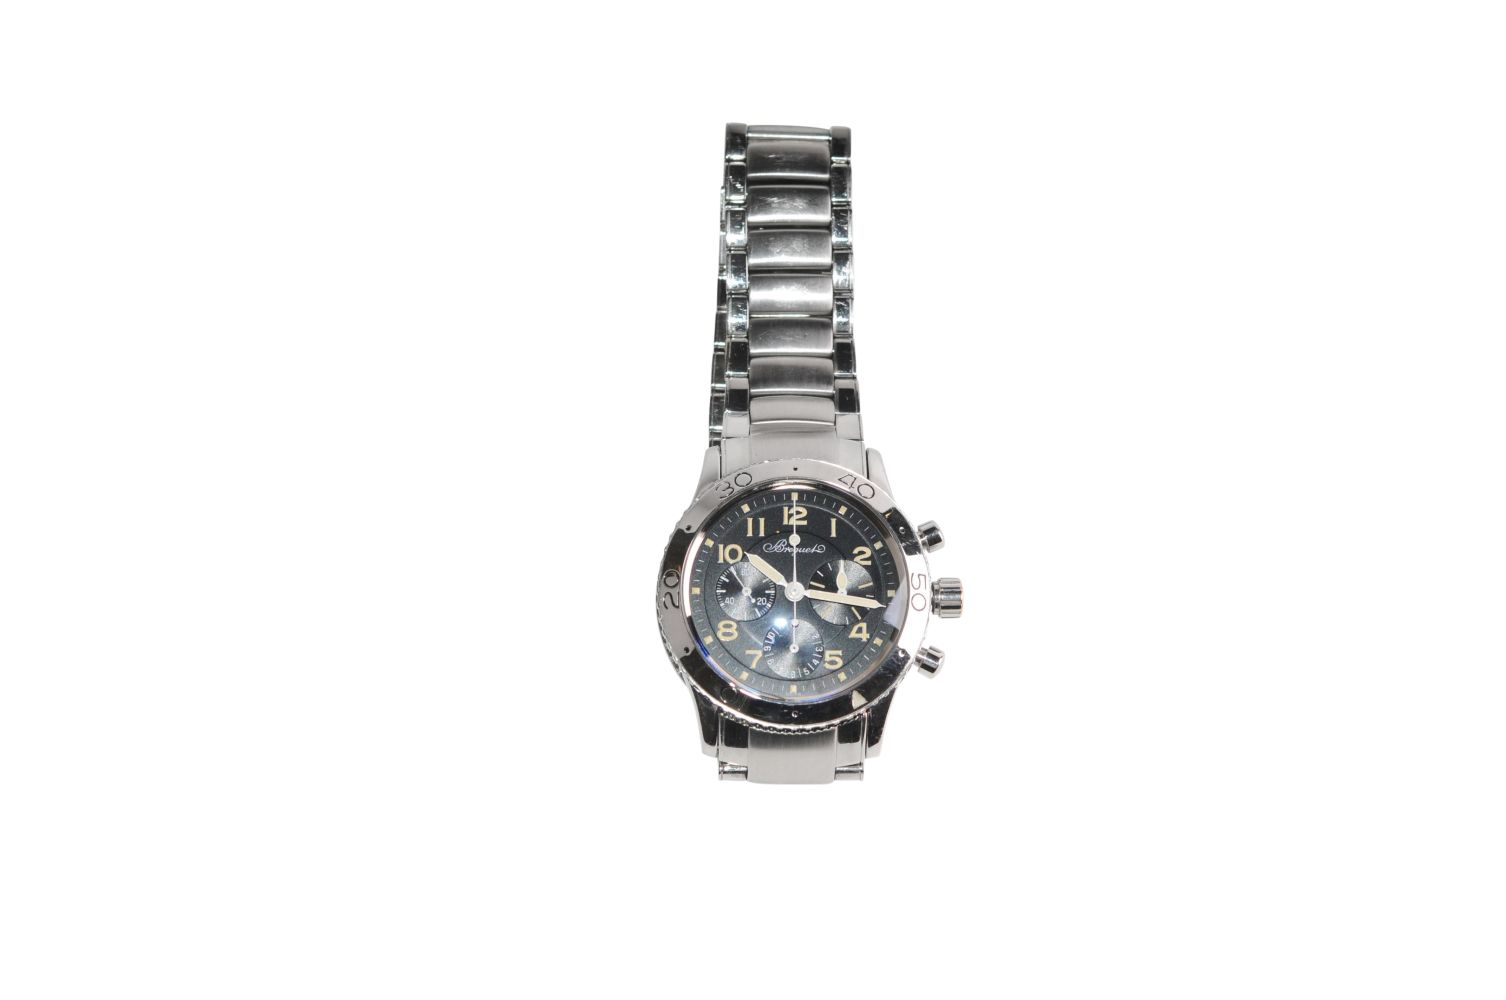 BREGUET Type XX AeronavaleSteel watch with steel strap automatic chrono 39 mm without box without - Bild 2 aus 5